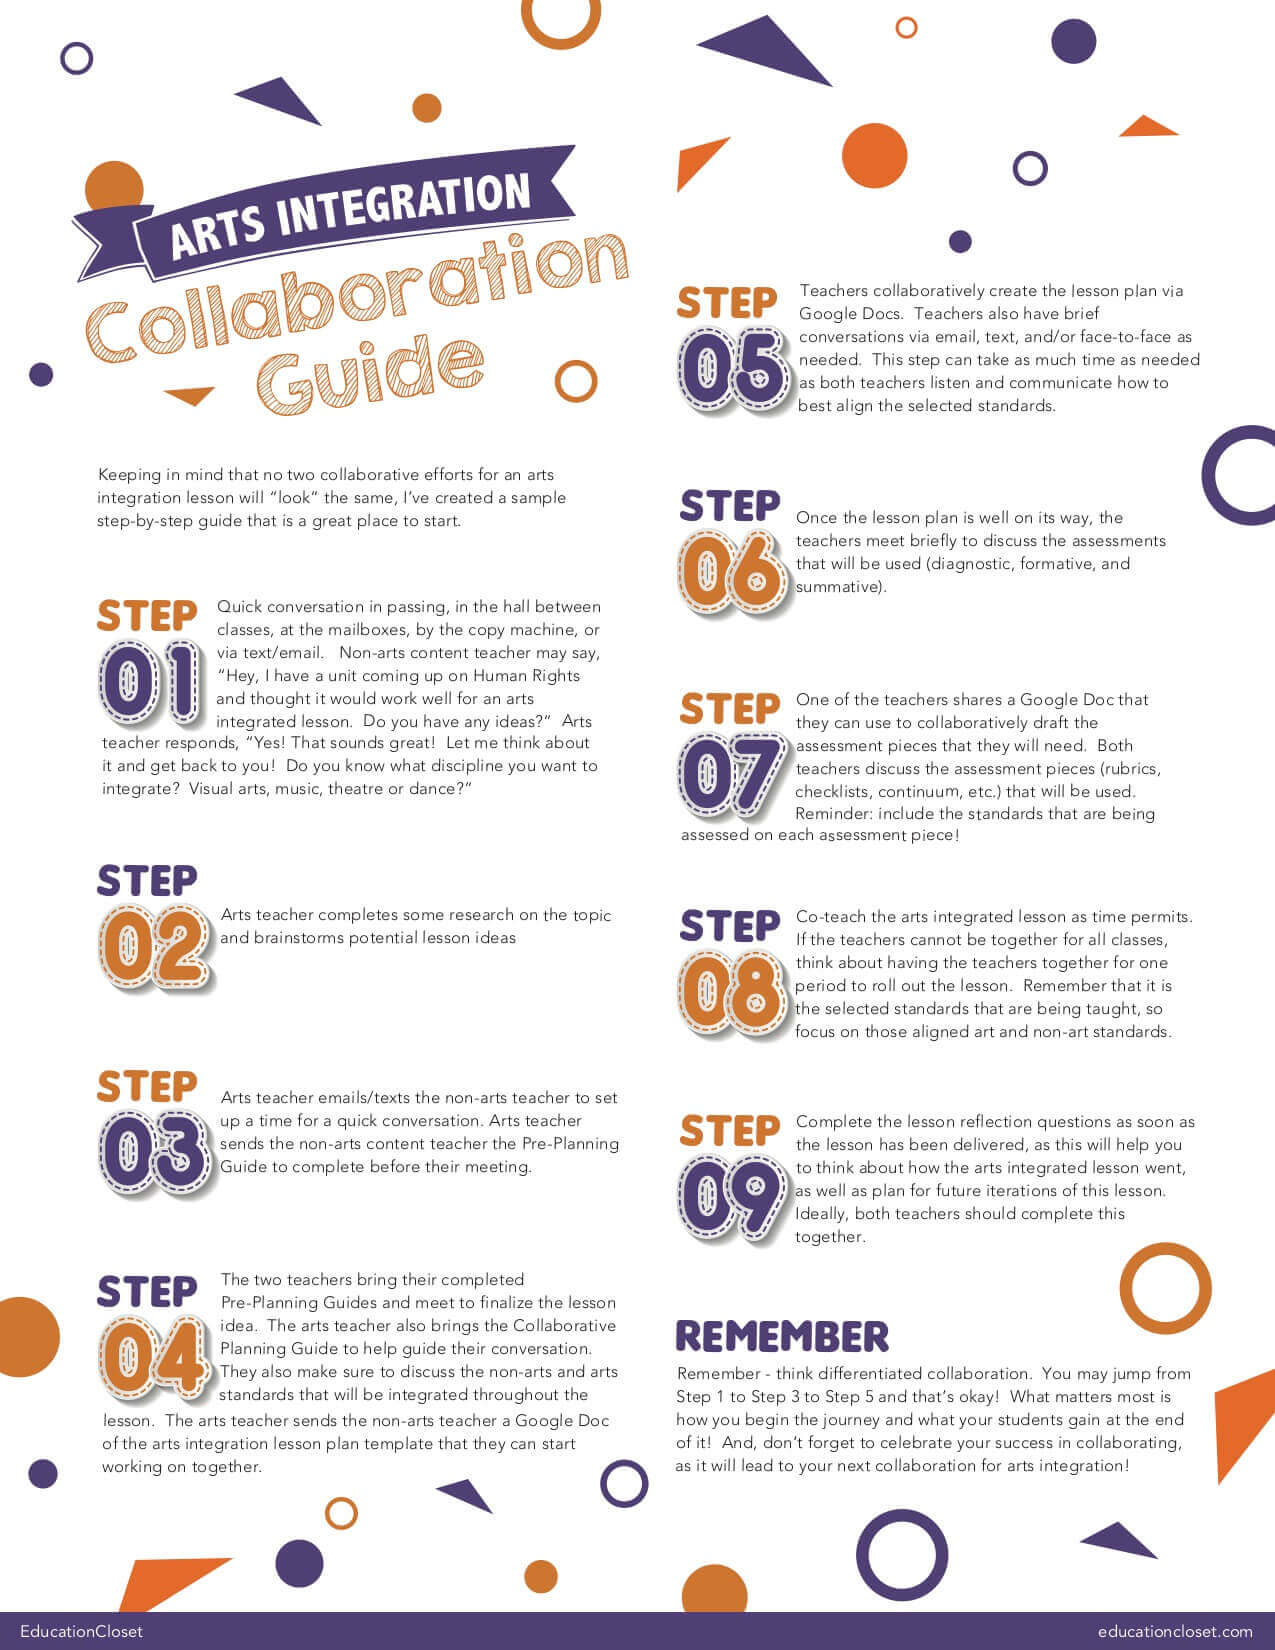 arts integration collaboration guide